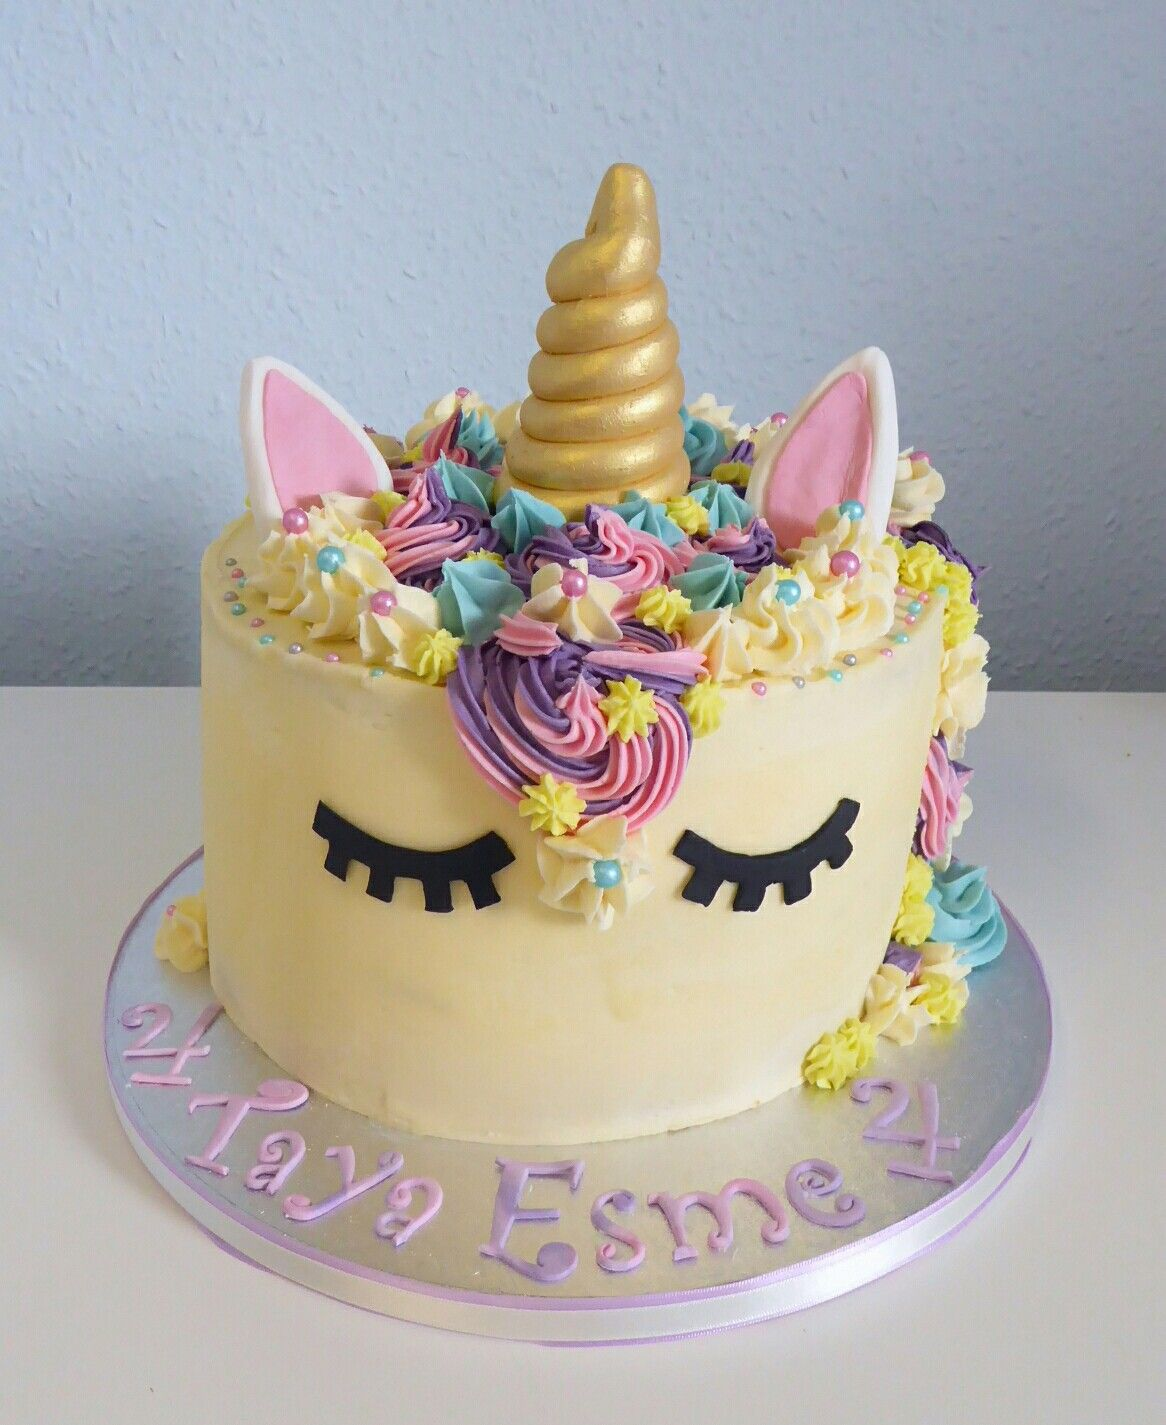 Excellent Unicorn Themed 4Th Birthday Cake With Images Birthday Cakes Funny Birthday Cards Online Sheoxdamsfinfo